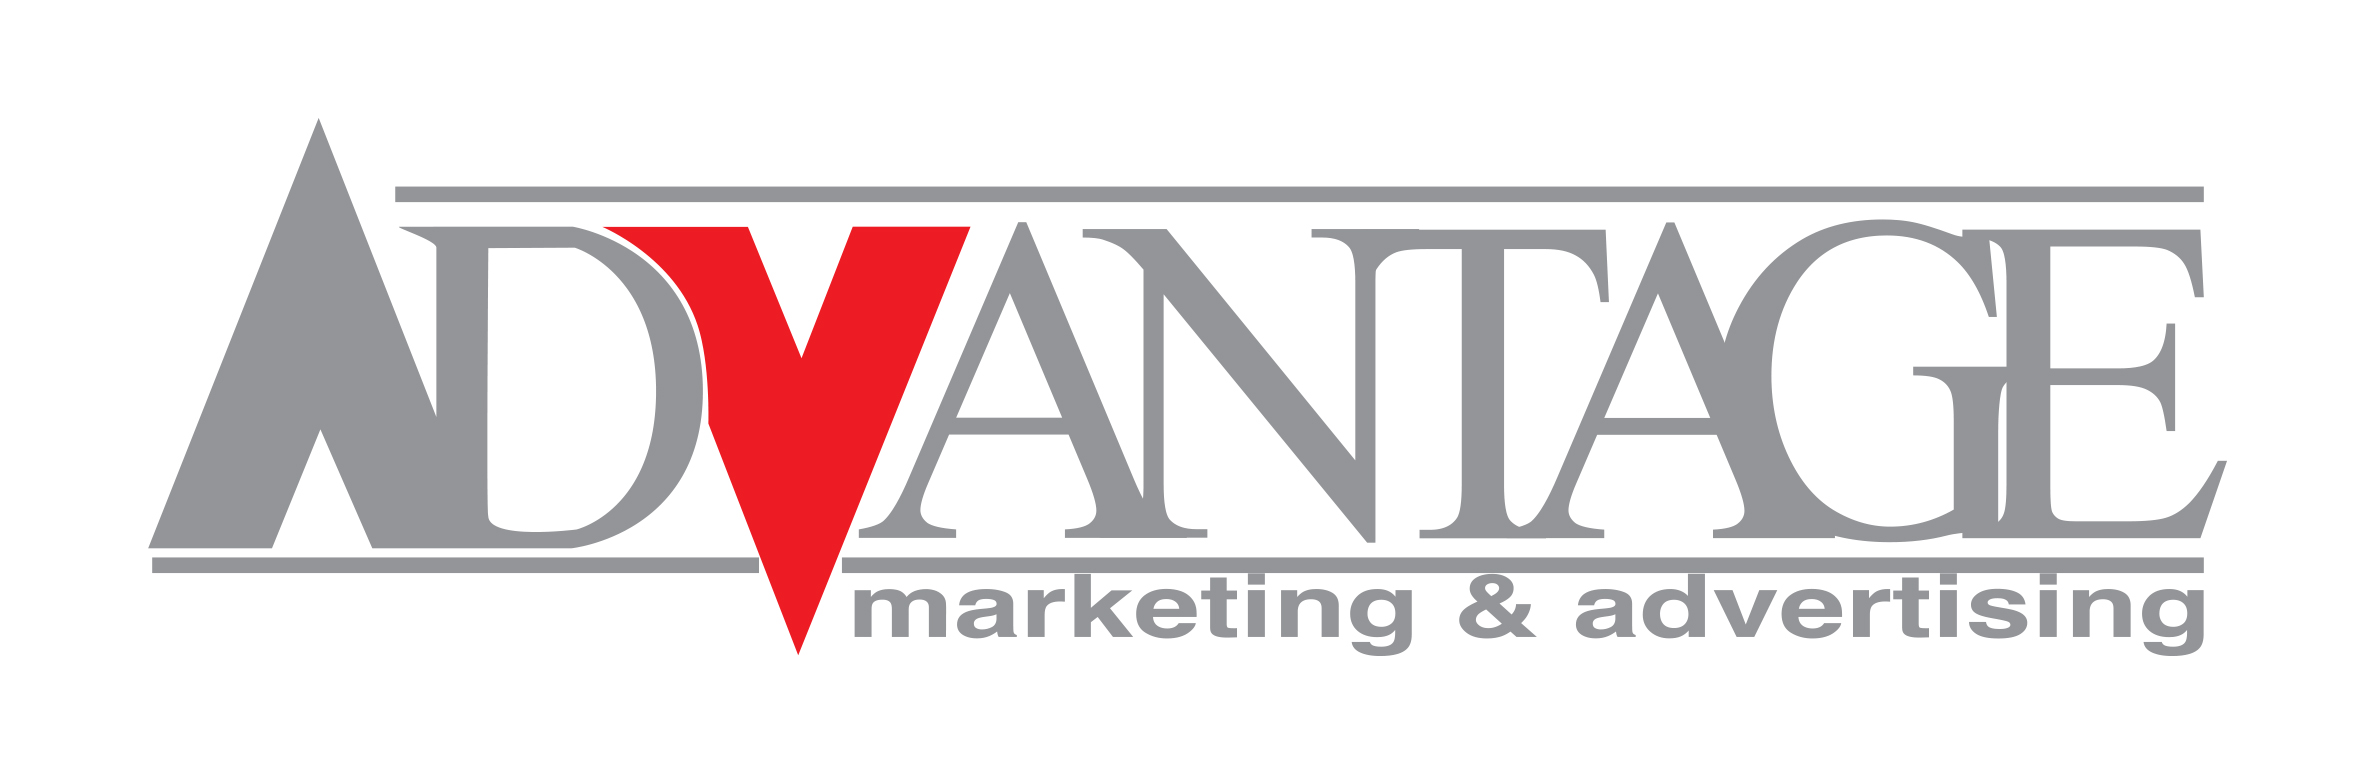 Advantage Marketing & Advertising